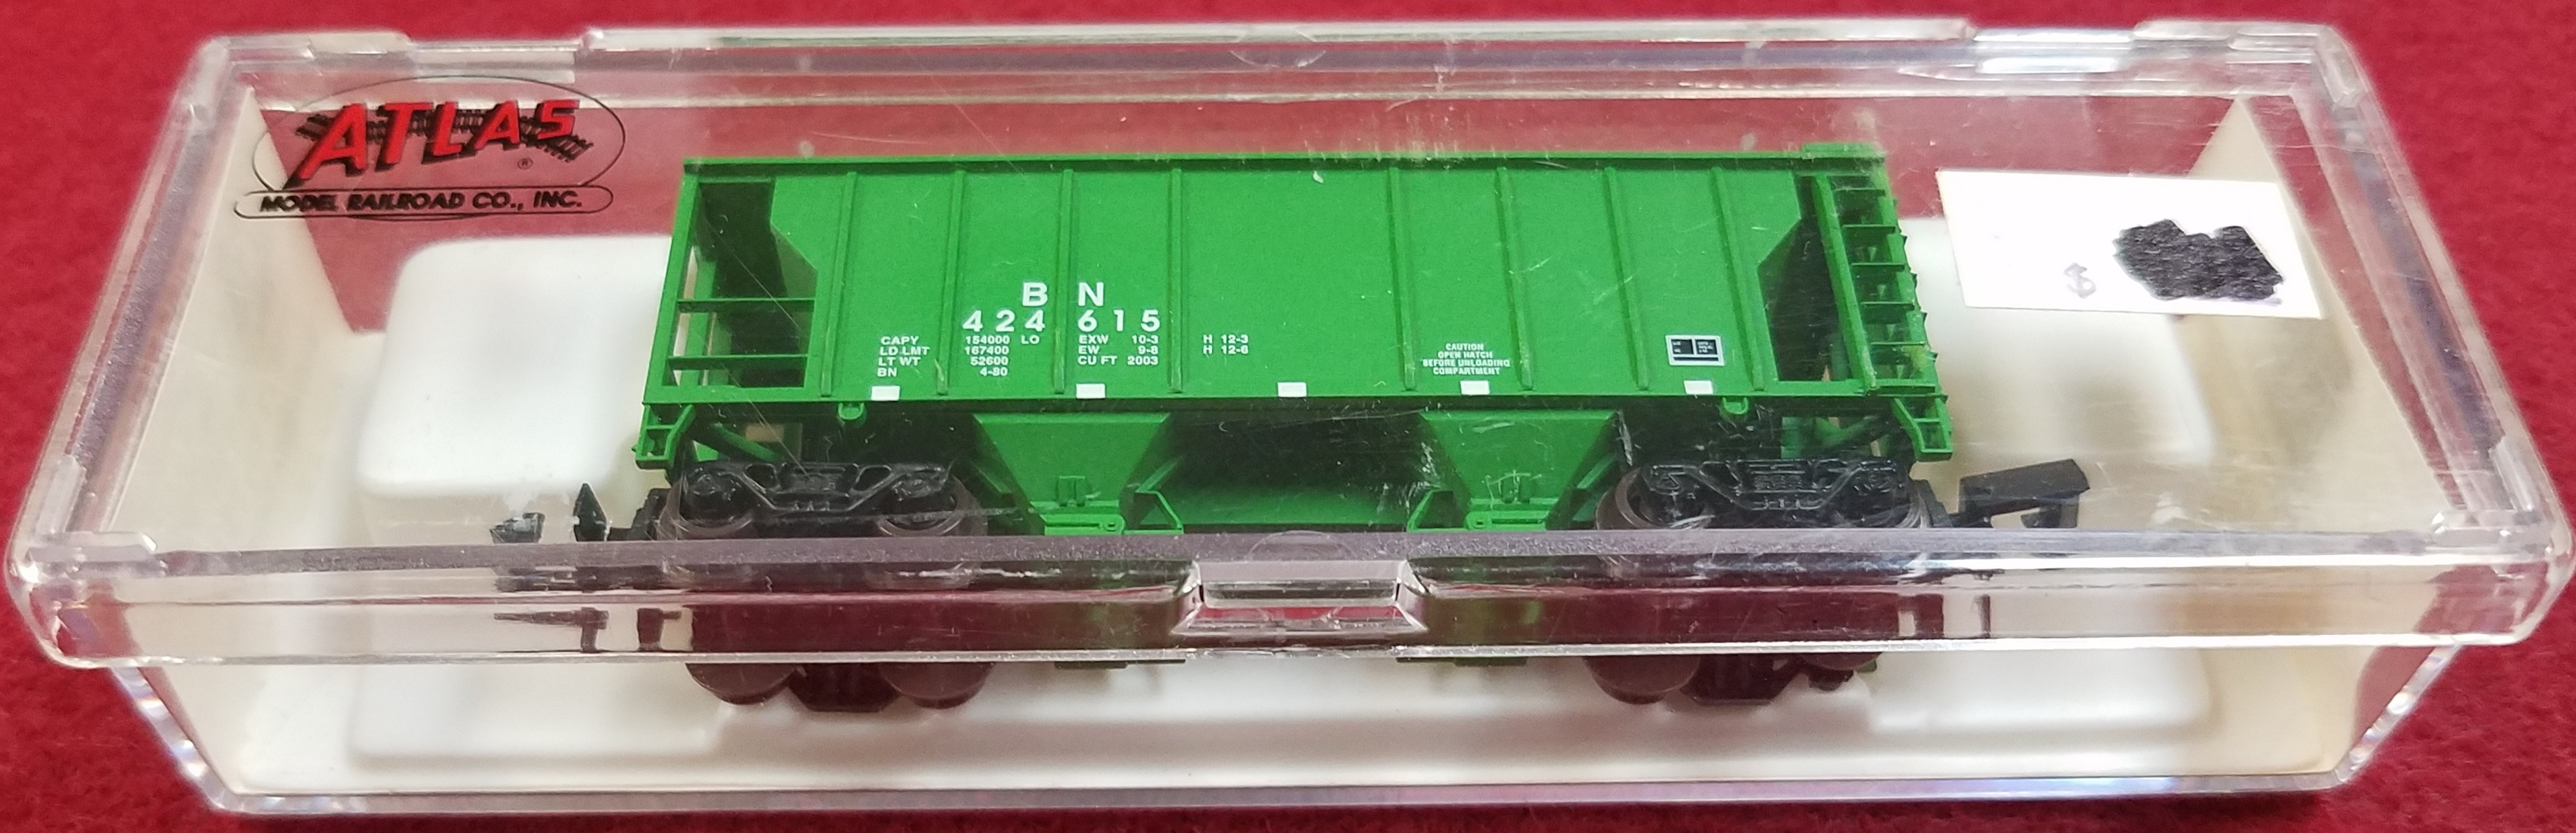 ATLAS - N SCALE - BN 424615 - 3152 2BAY PS-2 - BURLINGTON NORTHERN